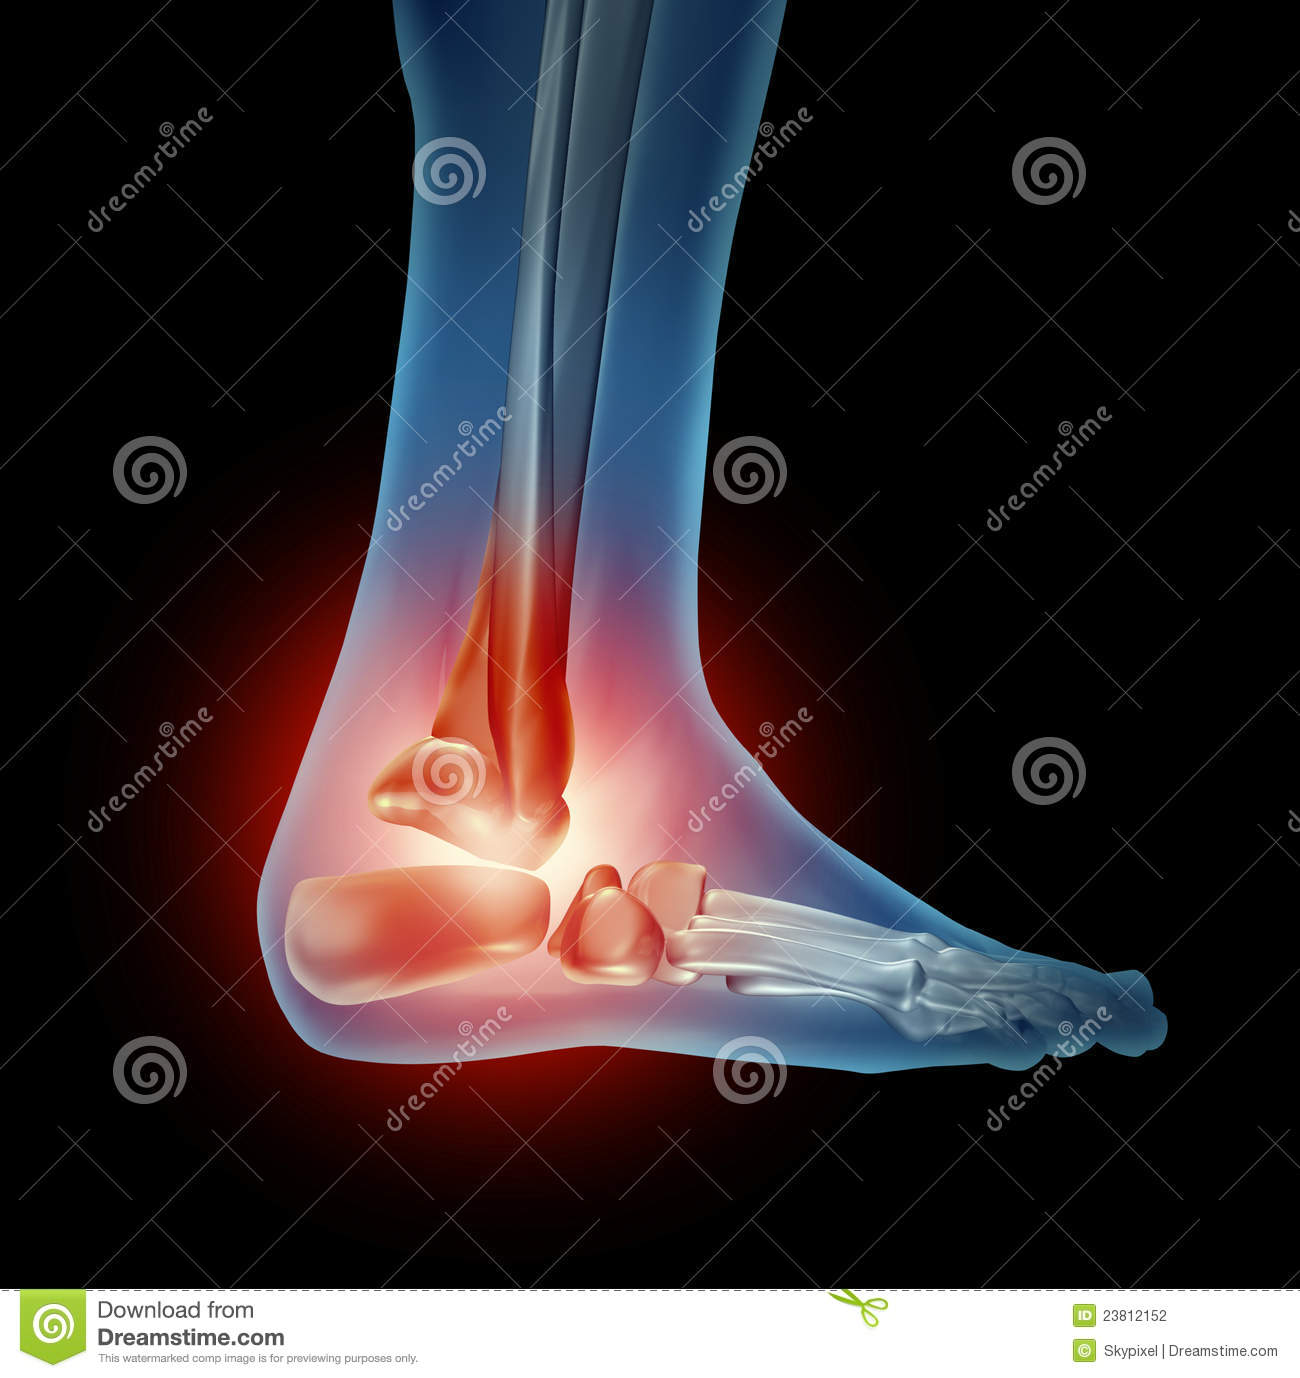 Ankle and foot pain from standing